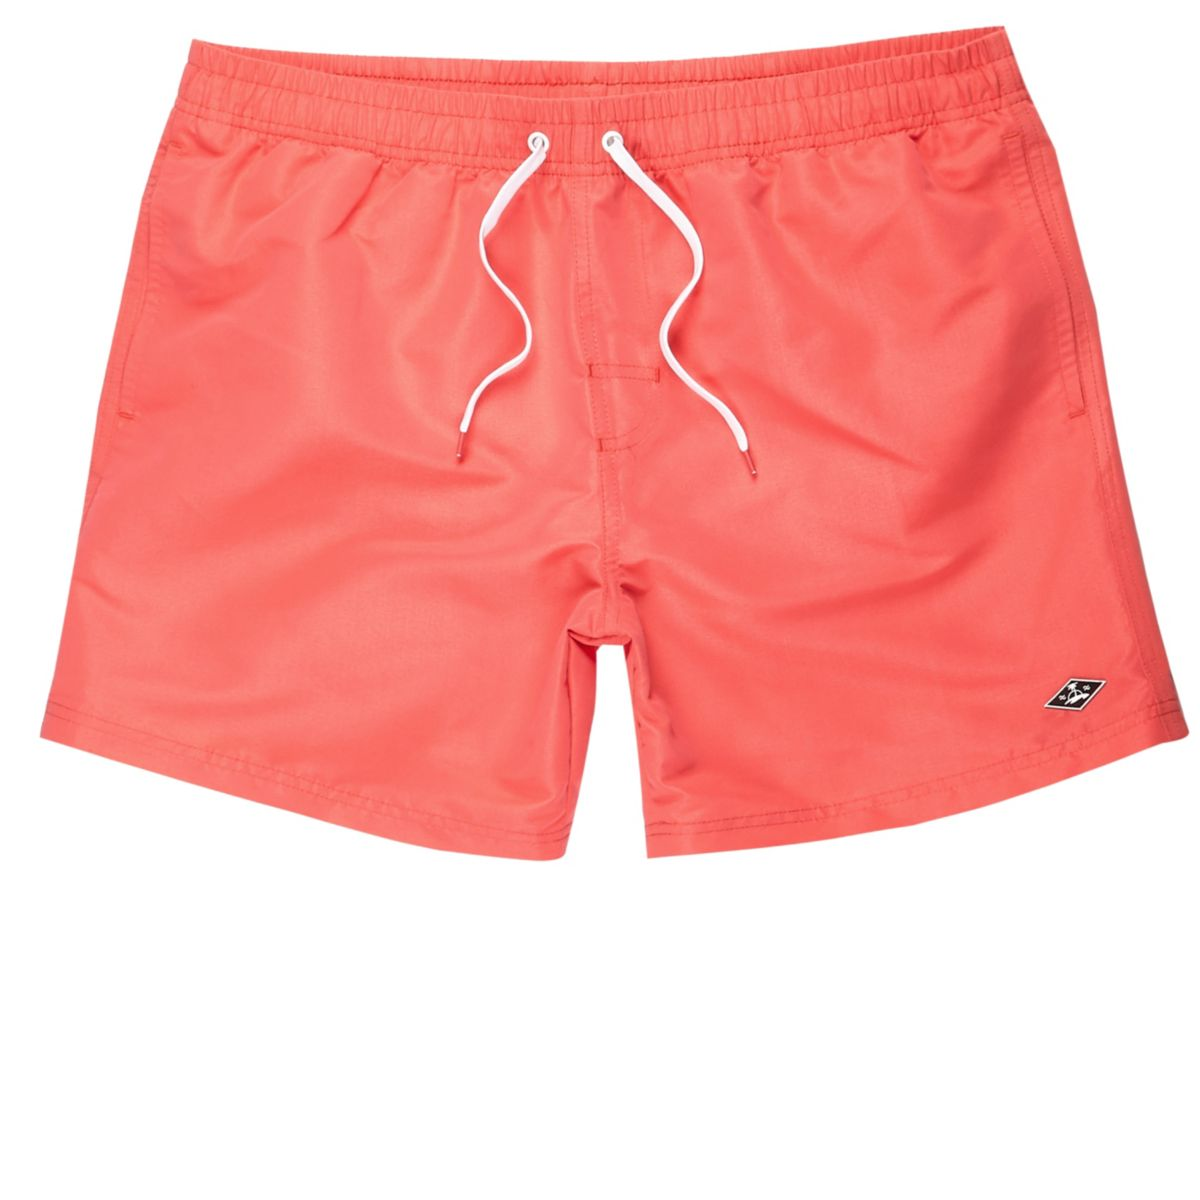 Coral orange swim shorts